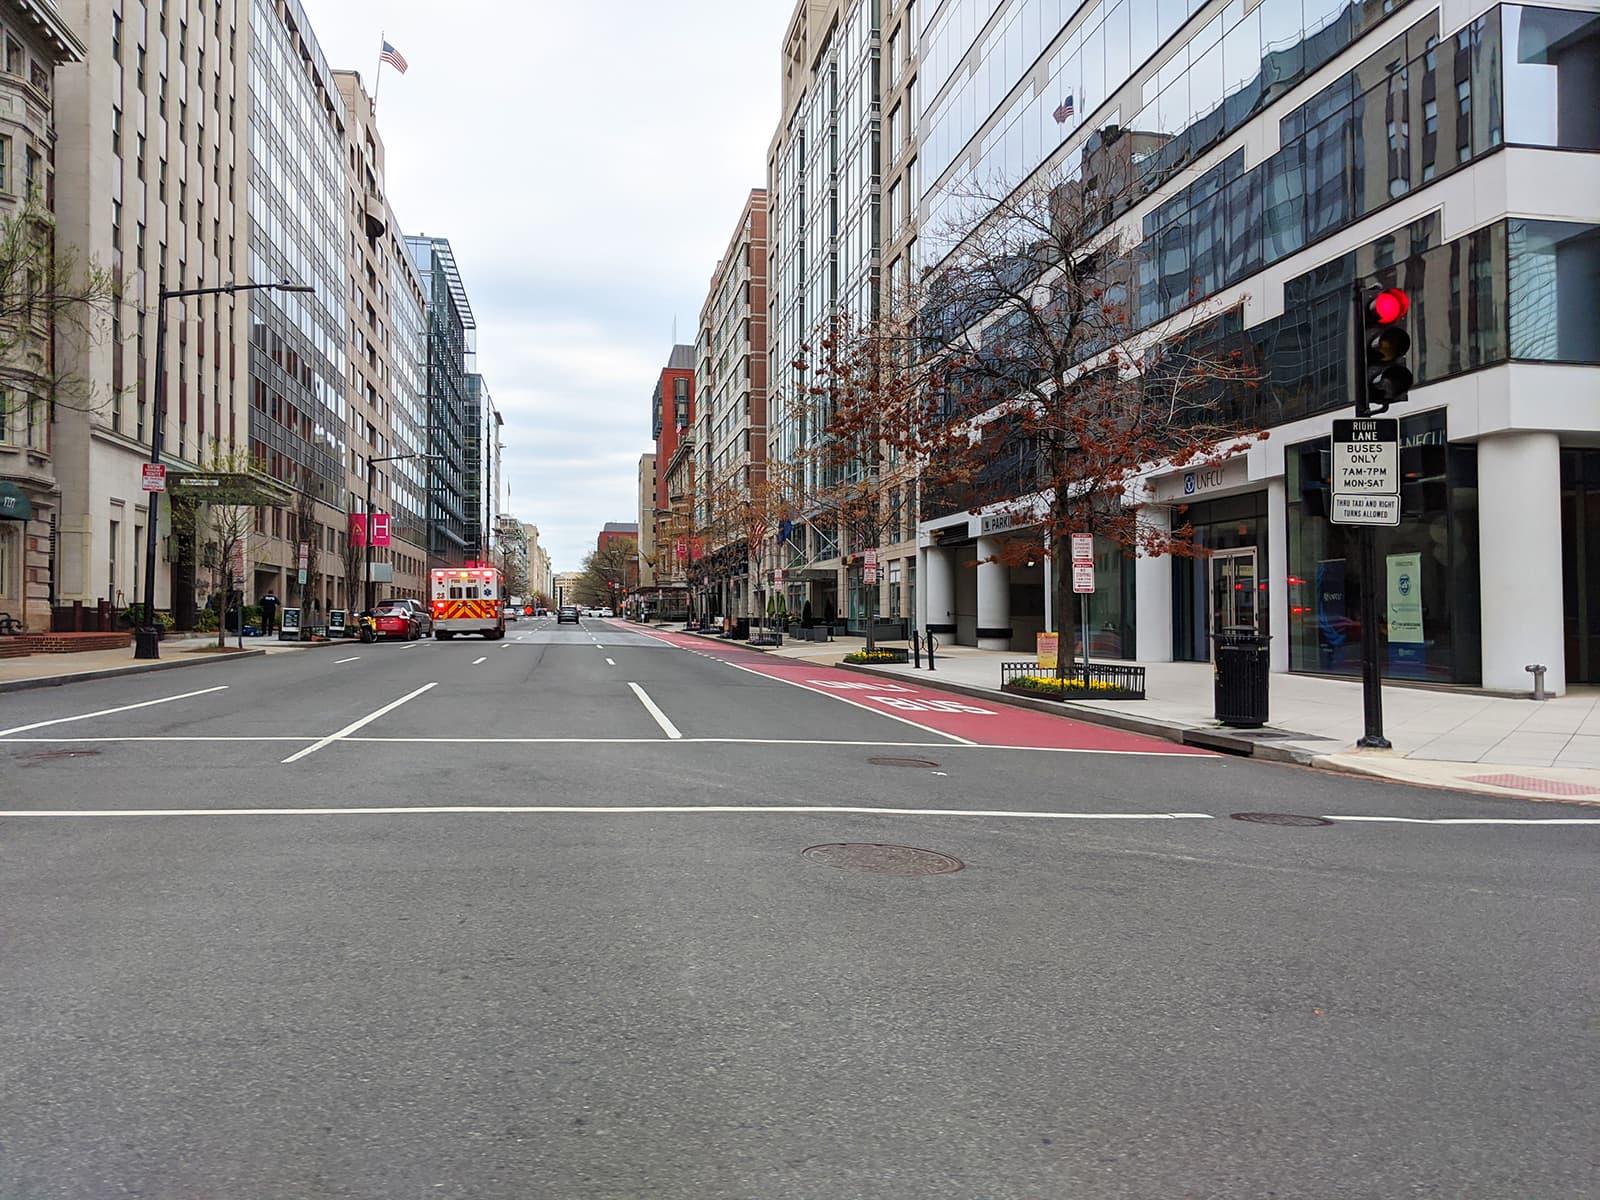 An ambulance occupies a barren street in downtown DC. - Picture by Author